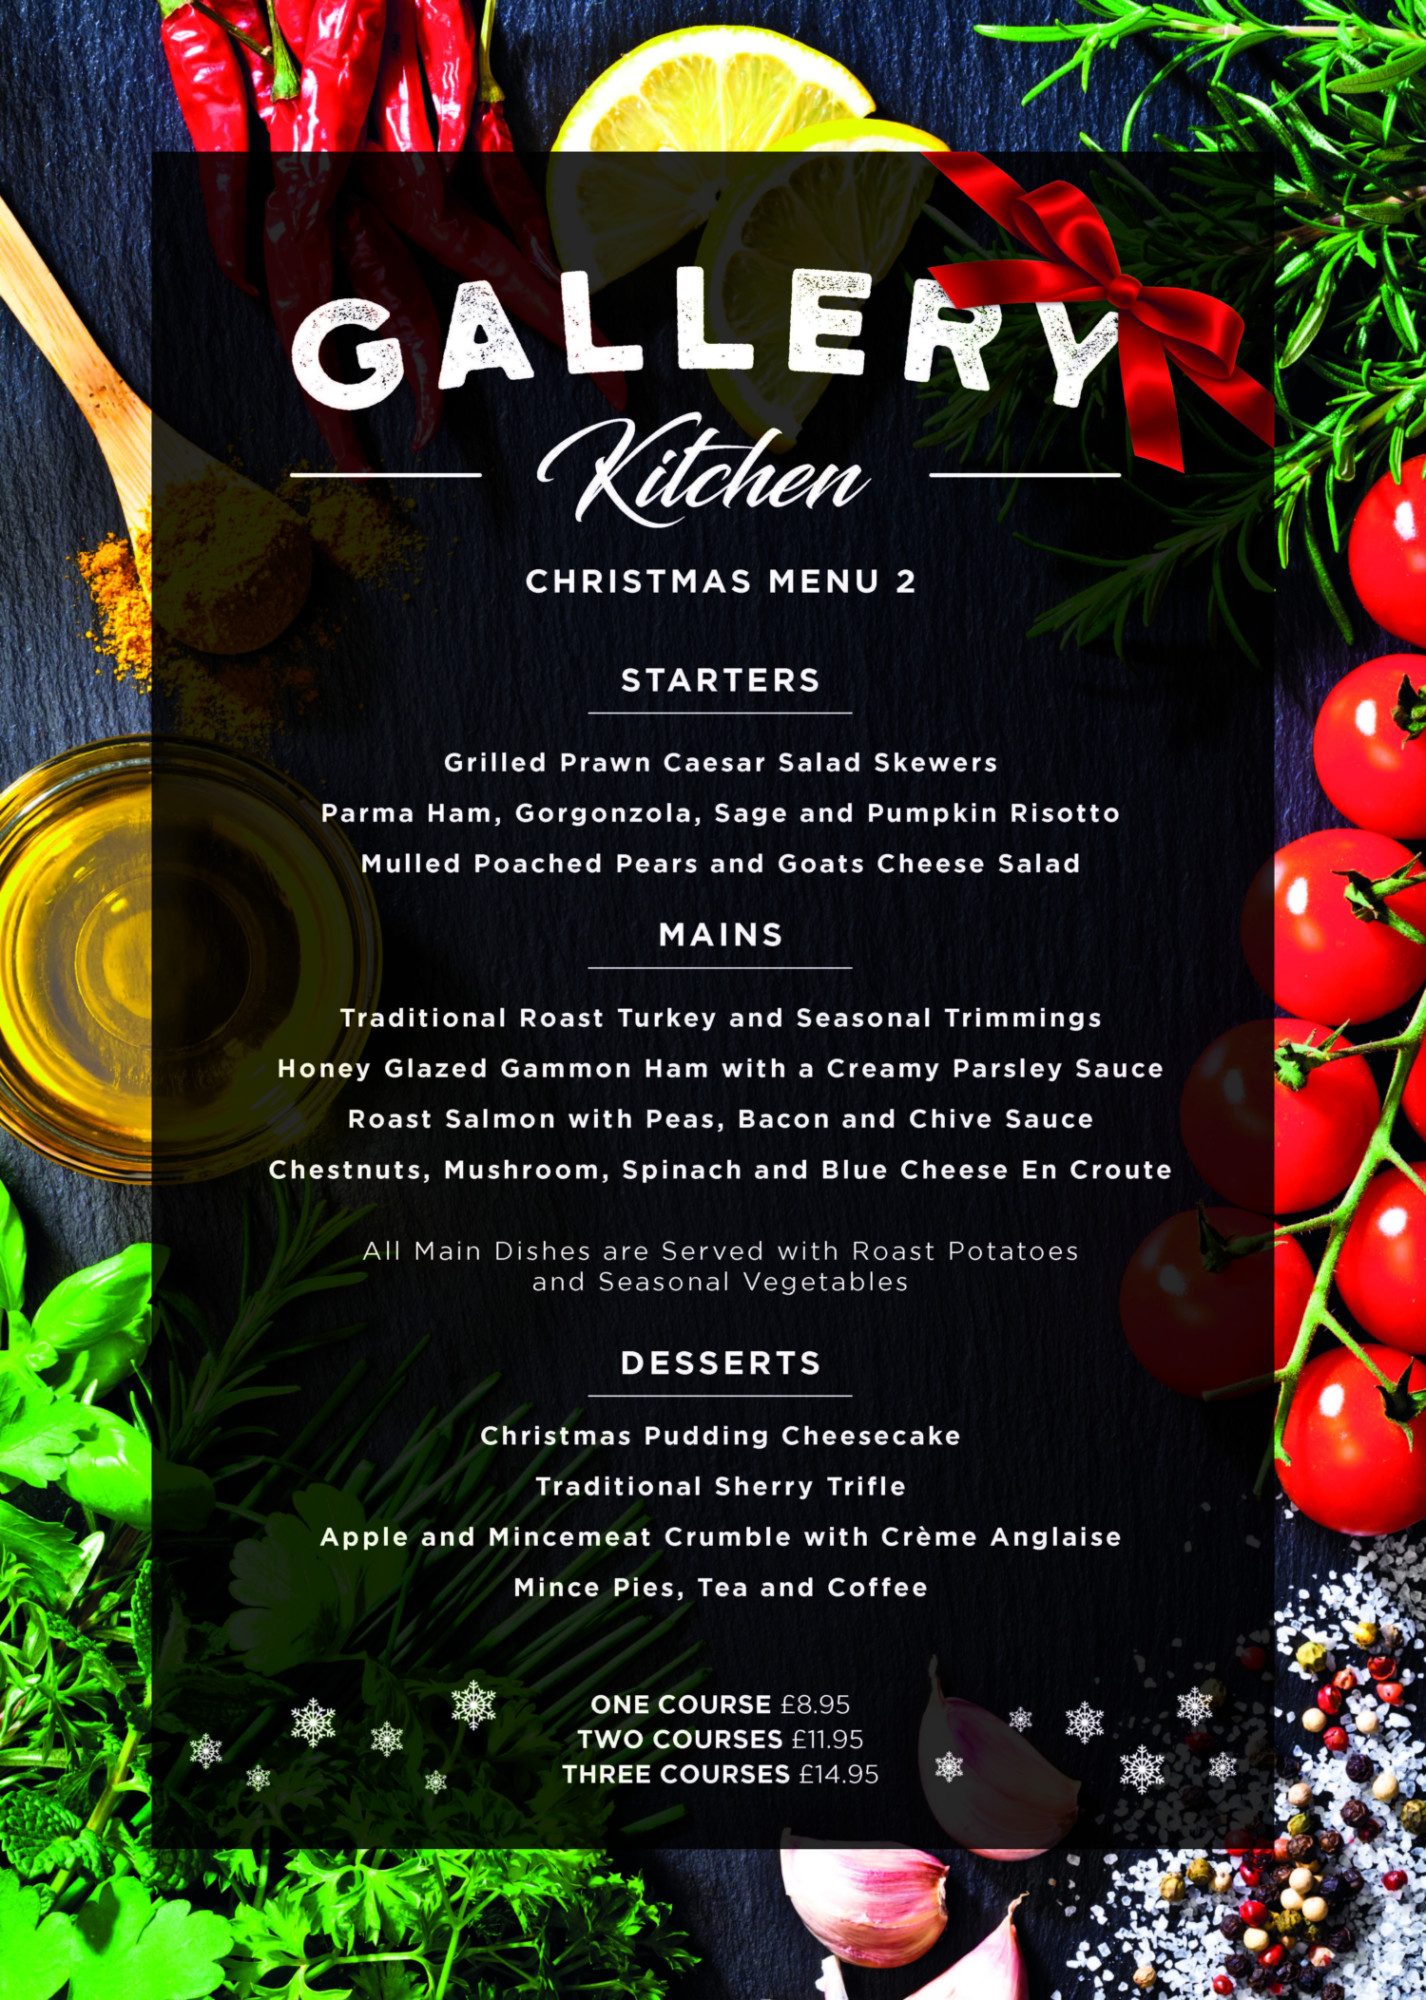 Gallery Restaurant Christmas Menu 2